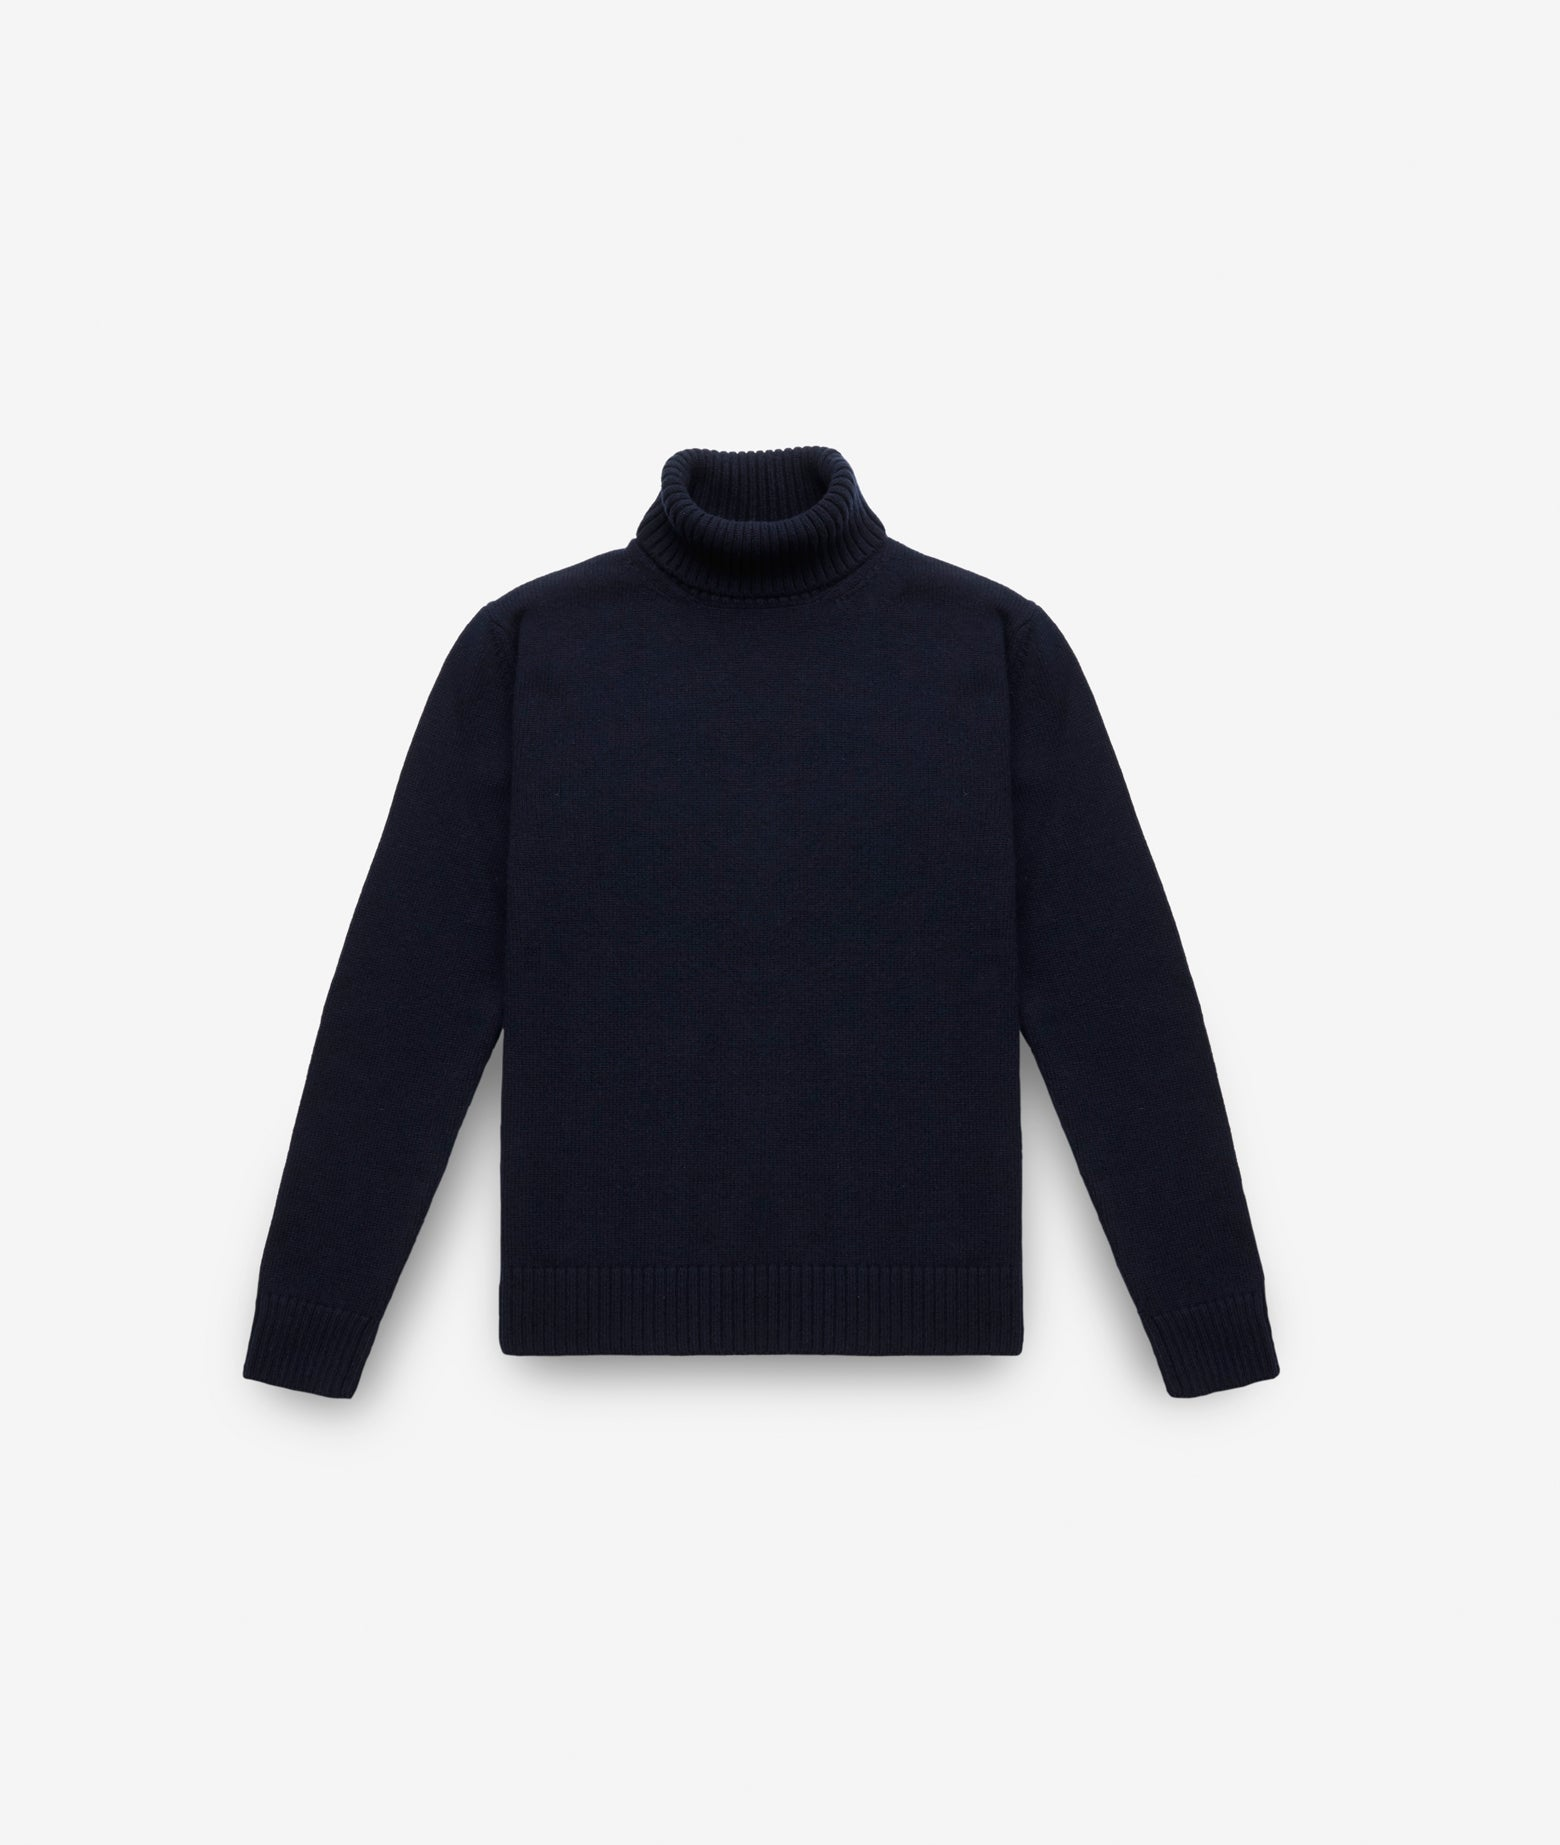 "Turtleneck Sweater ""Les Diablerets"""